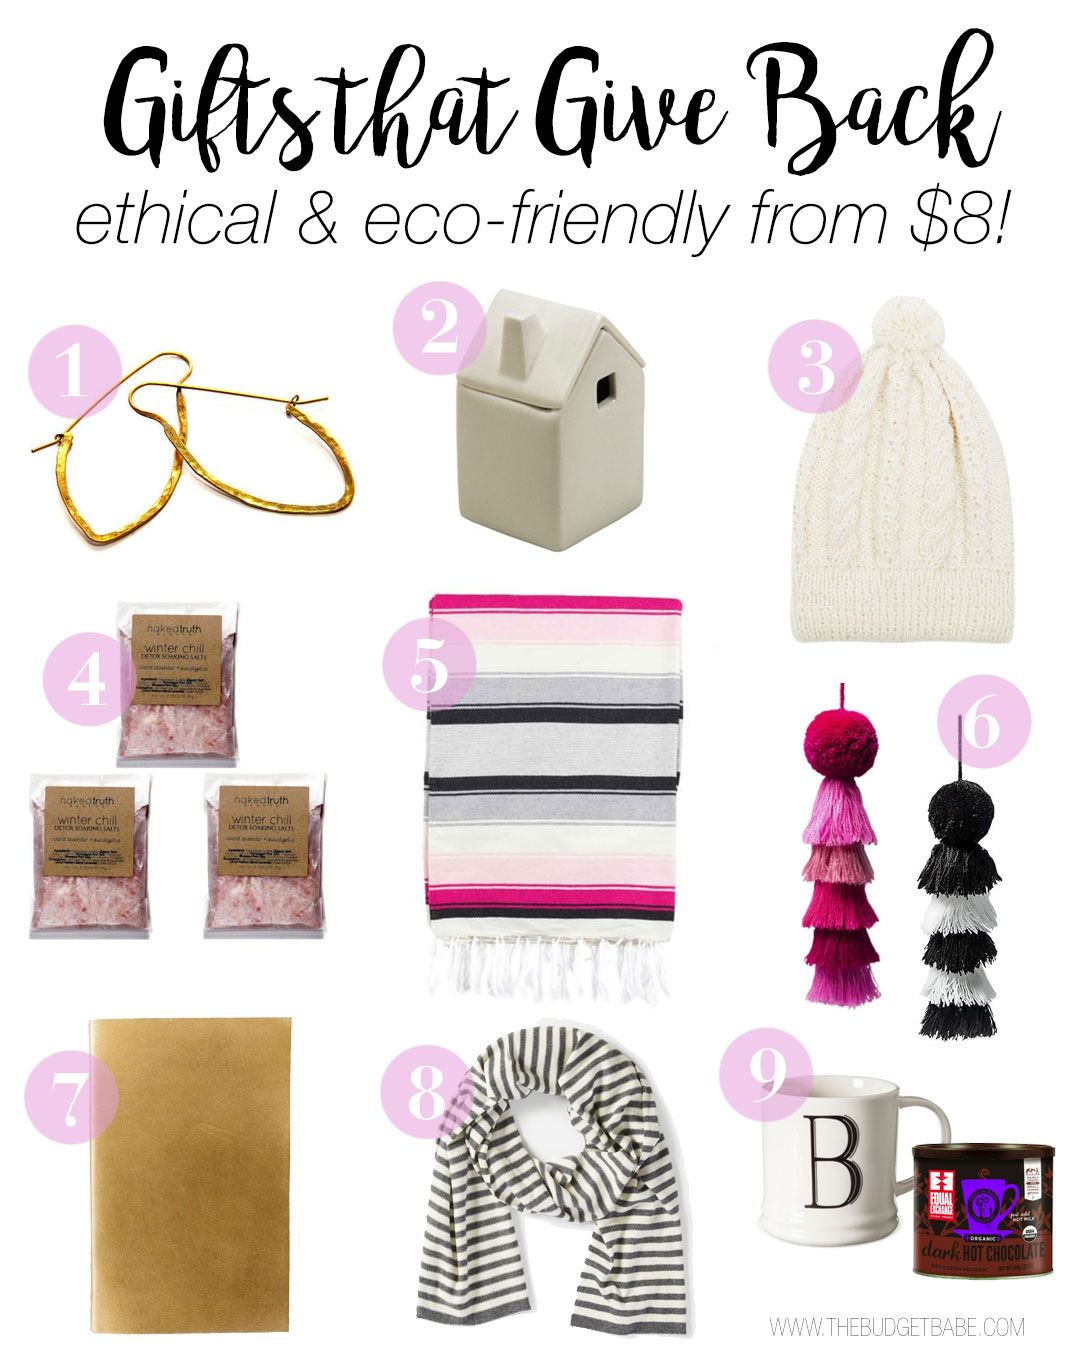 Gifts that Give Back! Shop ethical, organic, fair-trade, eco-friendly gift ideas on a budget